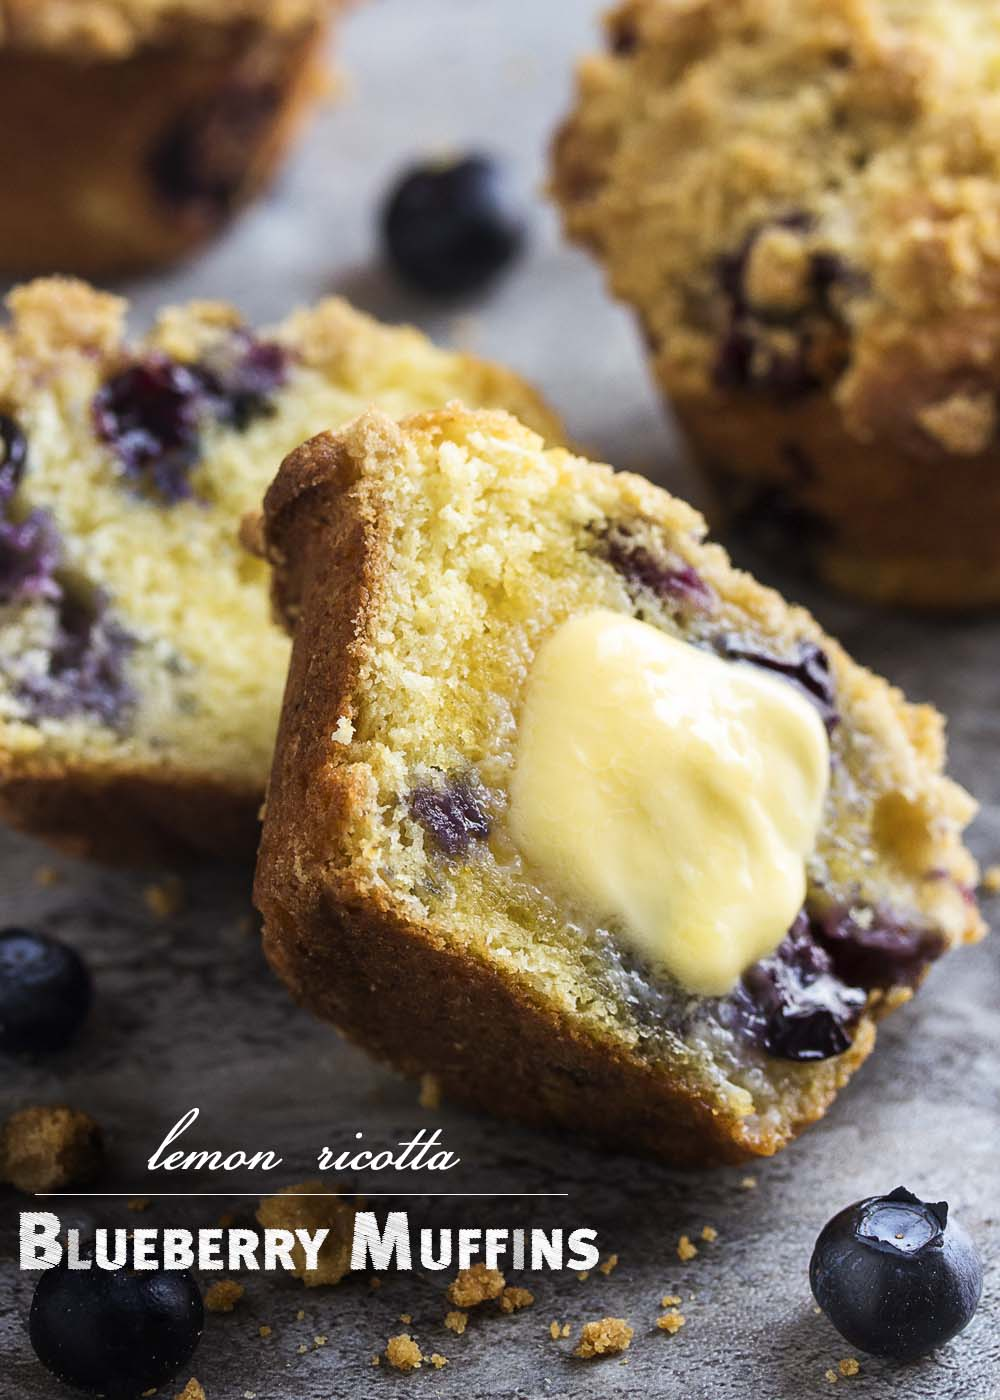 Meyer lemons provide a great, complex, floral flavor to this easy recipe for crumb topped blueberry ricotta muffins. Great for breakfast or any time of the day! | justalittlebitofbacon.com